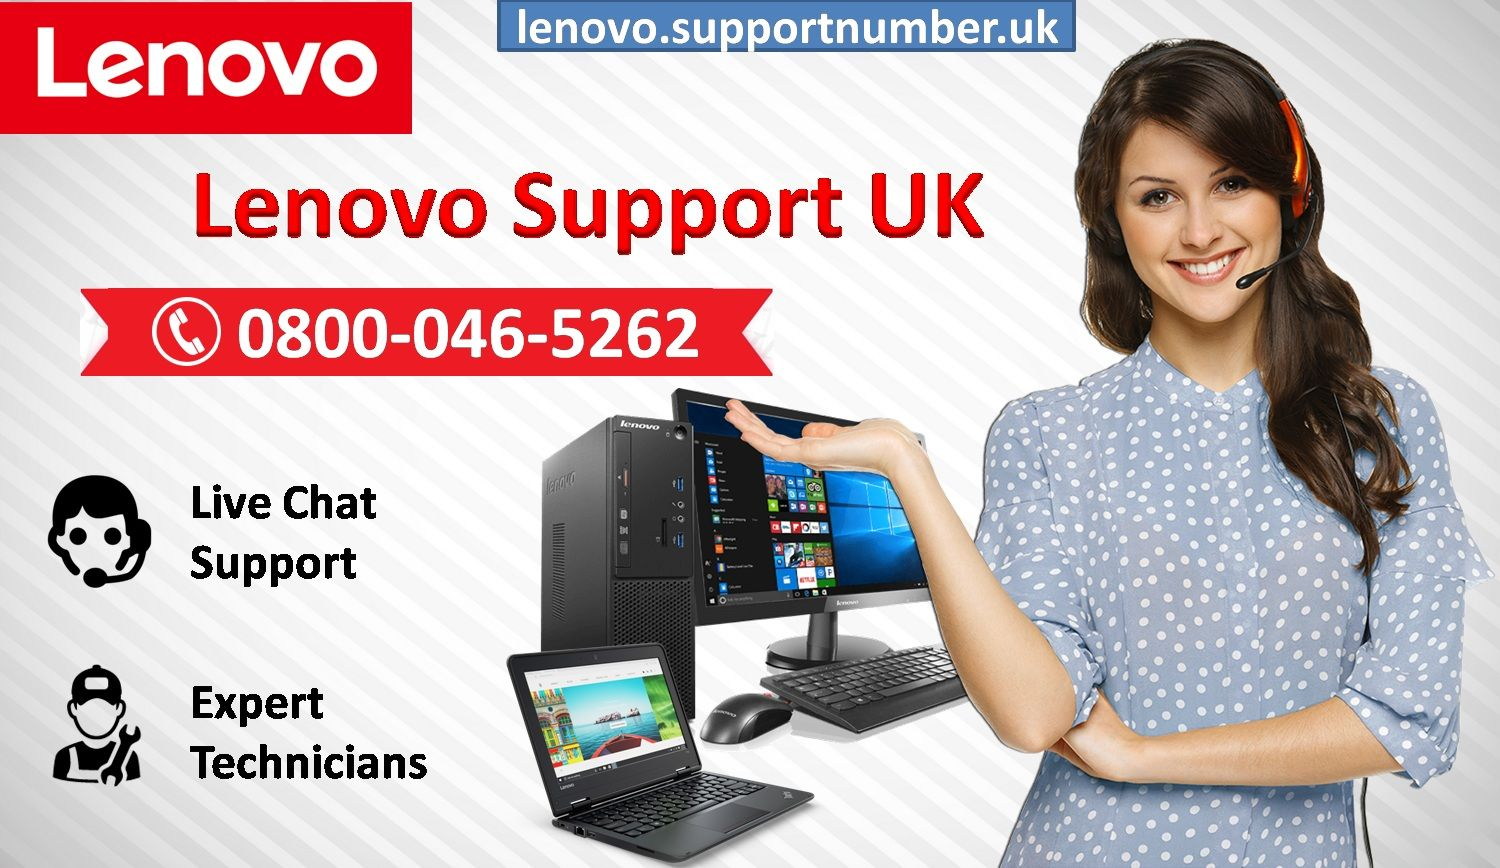 How To Factory Reset A Lenovo Laptop With Windows 8 Computer Support Lenovo Lenovo Computer